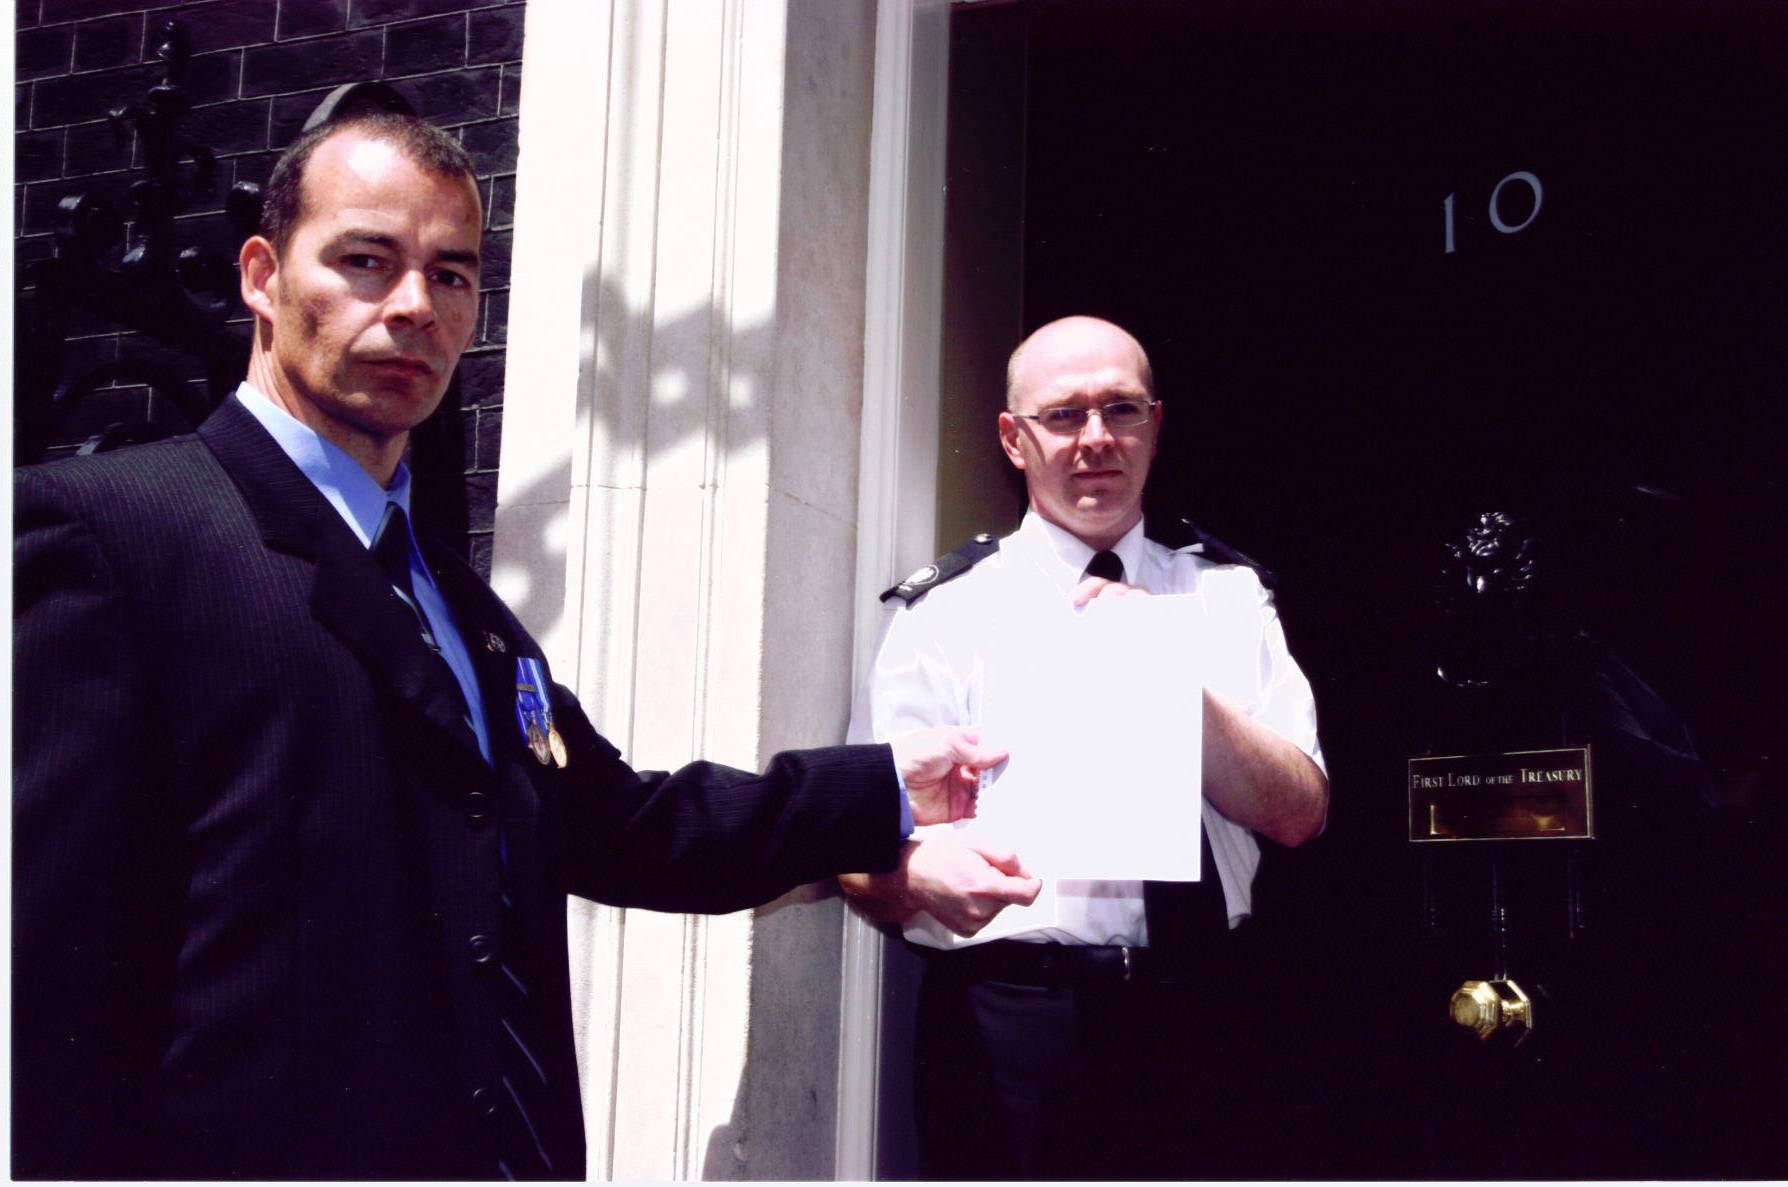 Report handed into Number 10